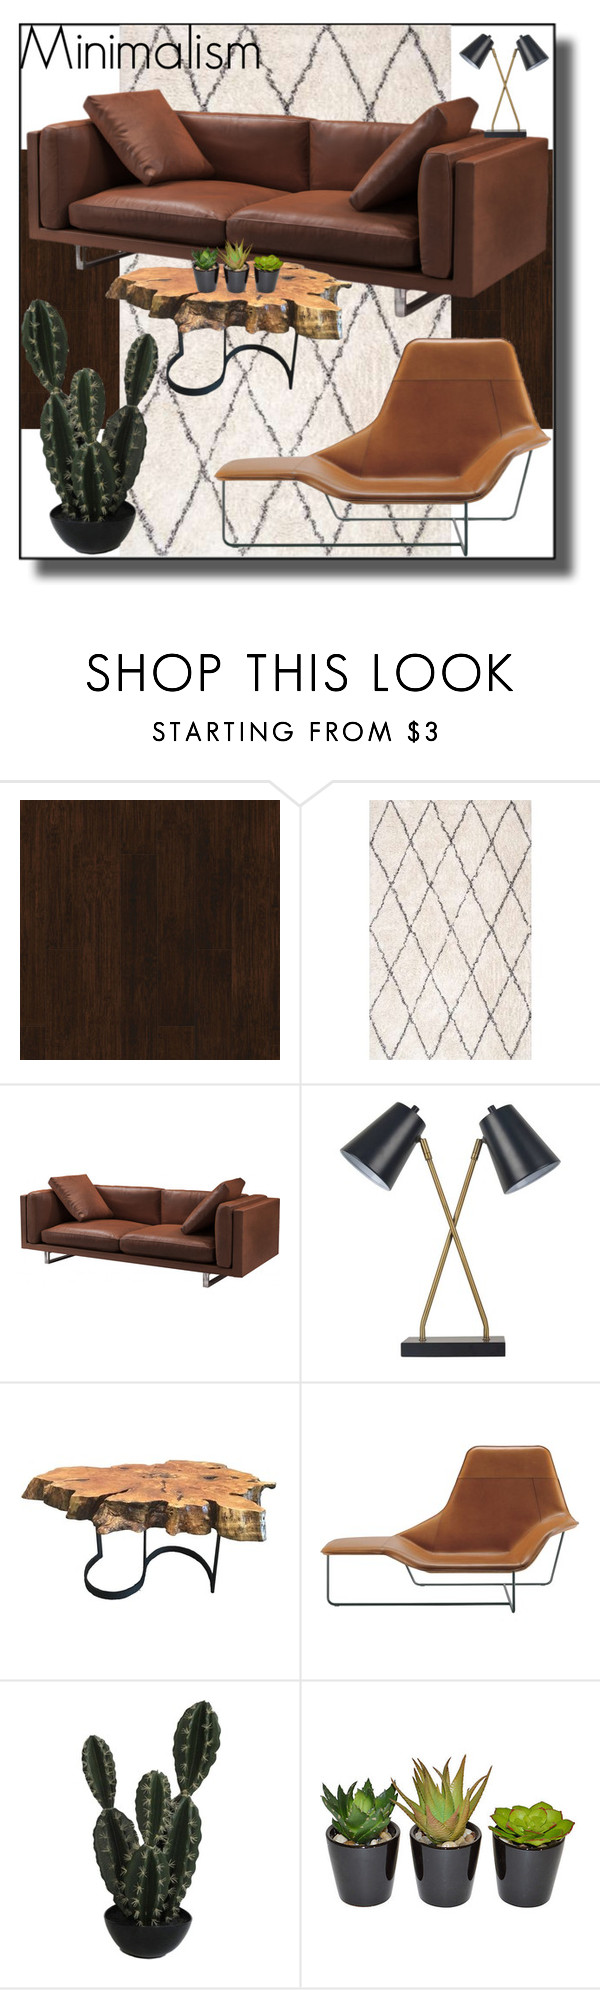 Threshold home decor shop for threshold home decor on polyvore -  Untitled By Andrea Geisler Liked On Polyvore Featuring Interior Interiors Interior Design Home Home Decor Interior Decorating Fulton Threshold